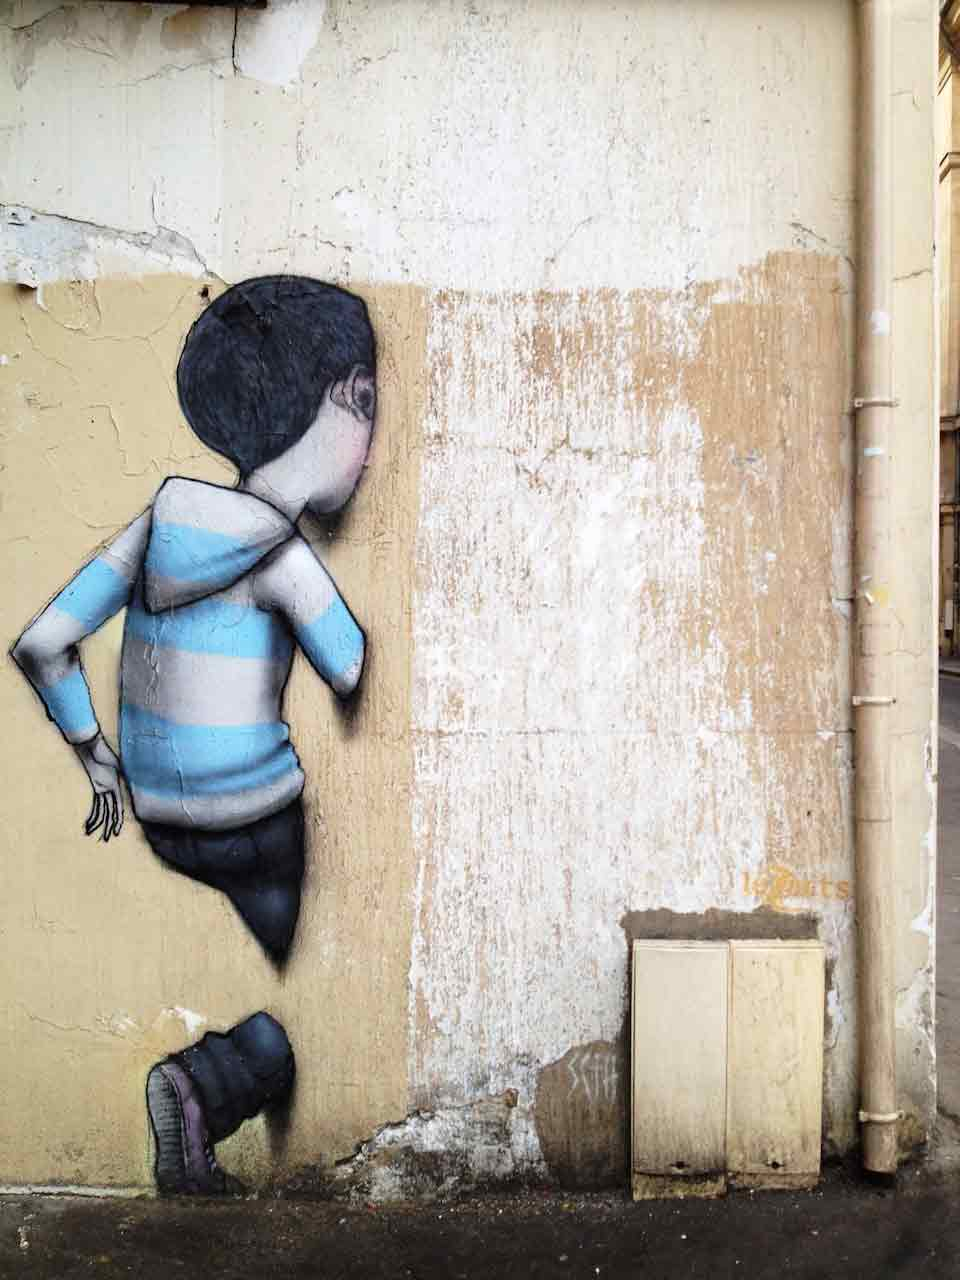 Street-Art-by-Seth-in-Paris-France-6457571